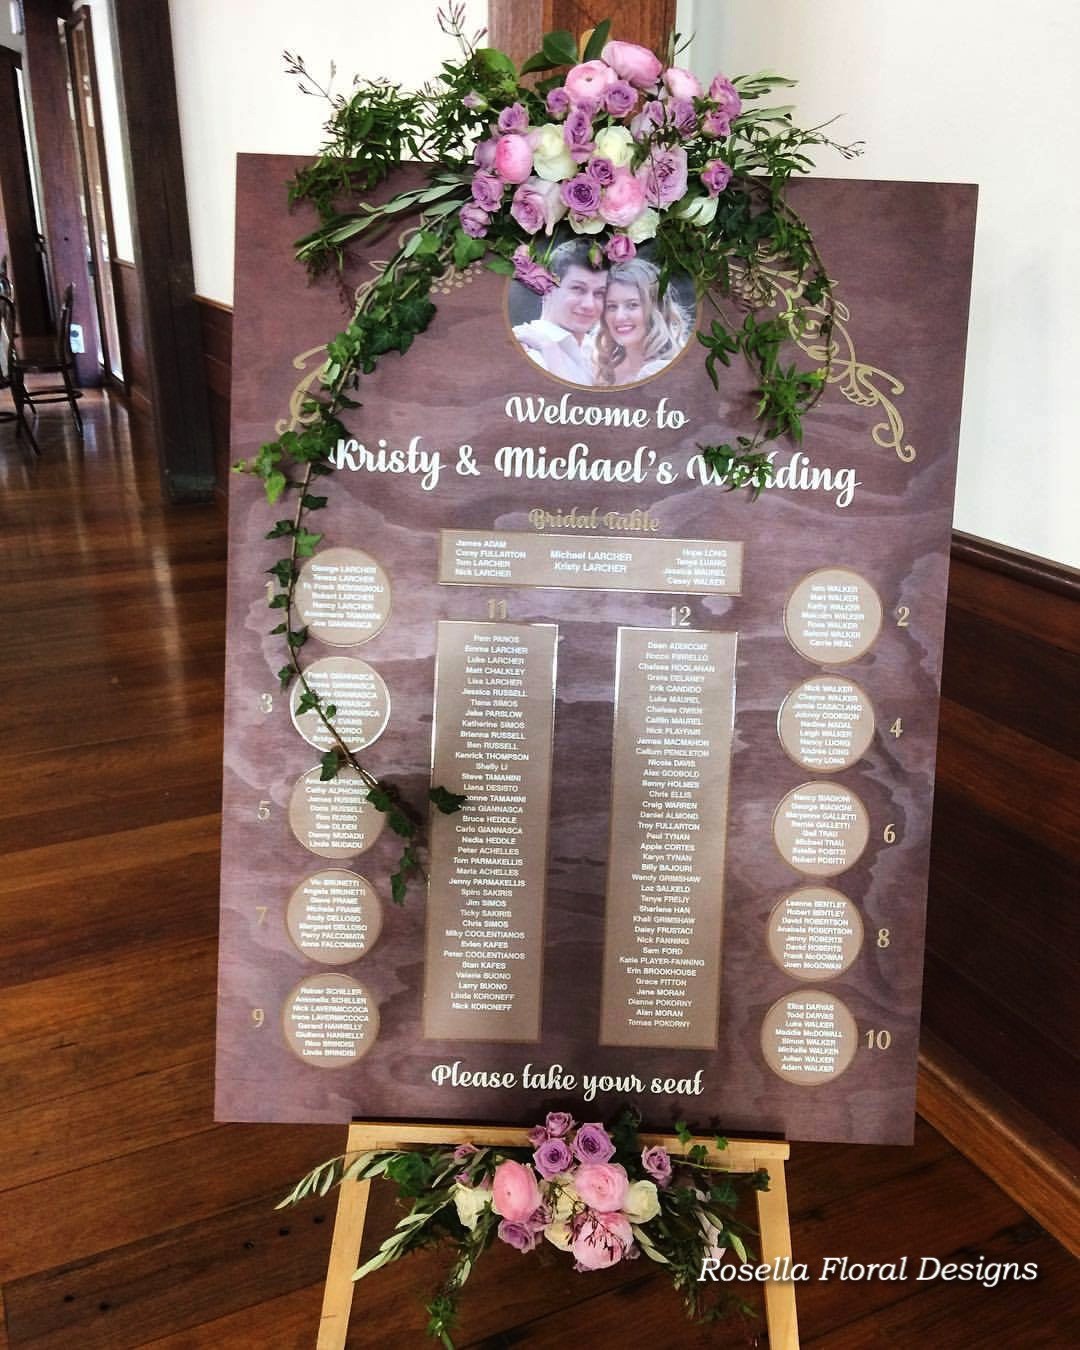 Wedding seating chart decorated with flowers.jpg